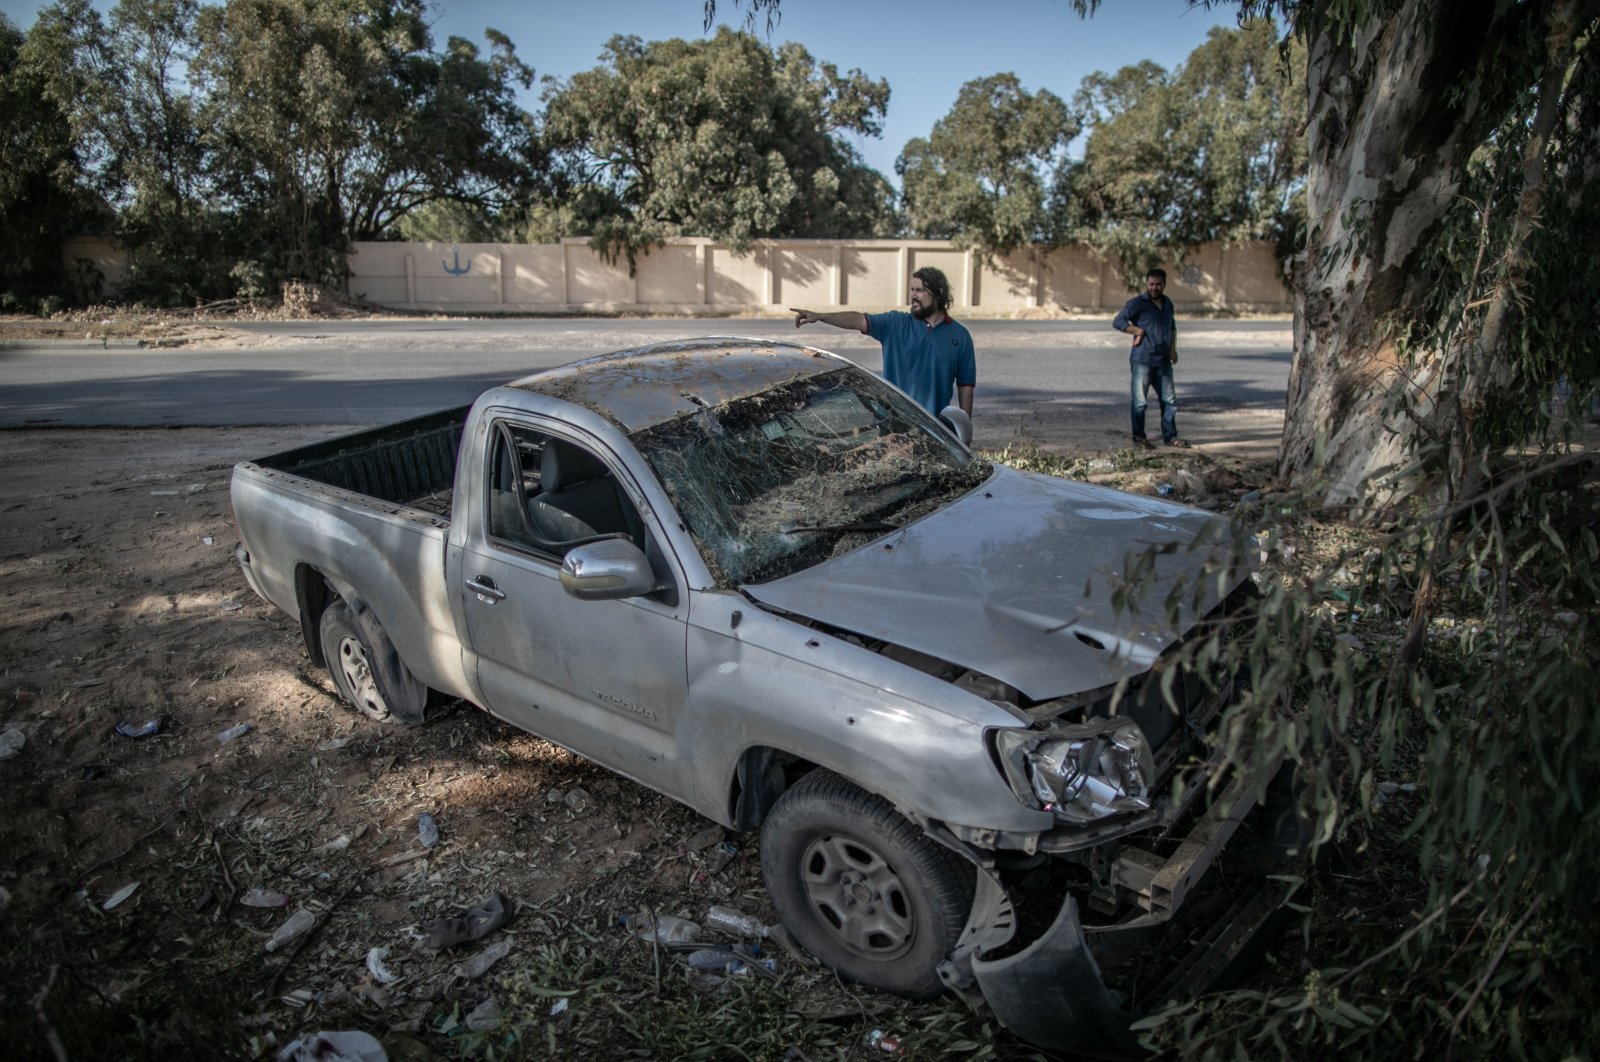 Since April 2019, the U.N.-backed Government of National Accord (GNA) has been under attack by Haftar's forces, based in eastern Libya, and more than 1,000 people have been killed in the violence. (AA)